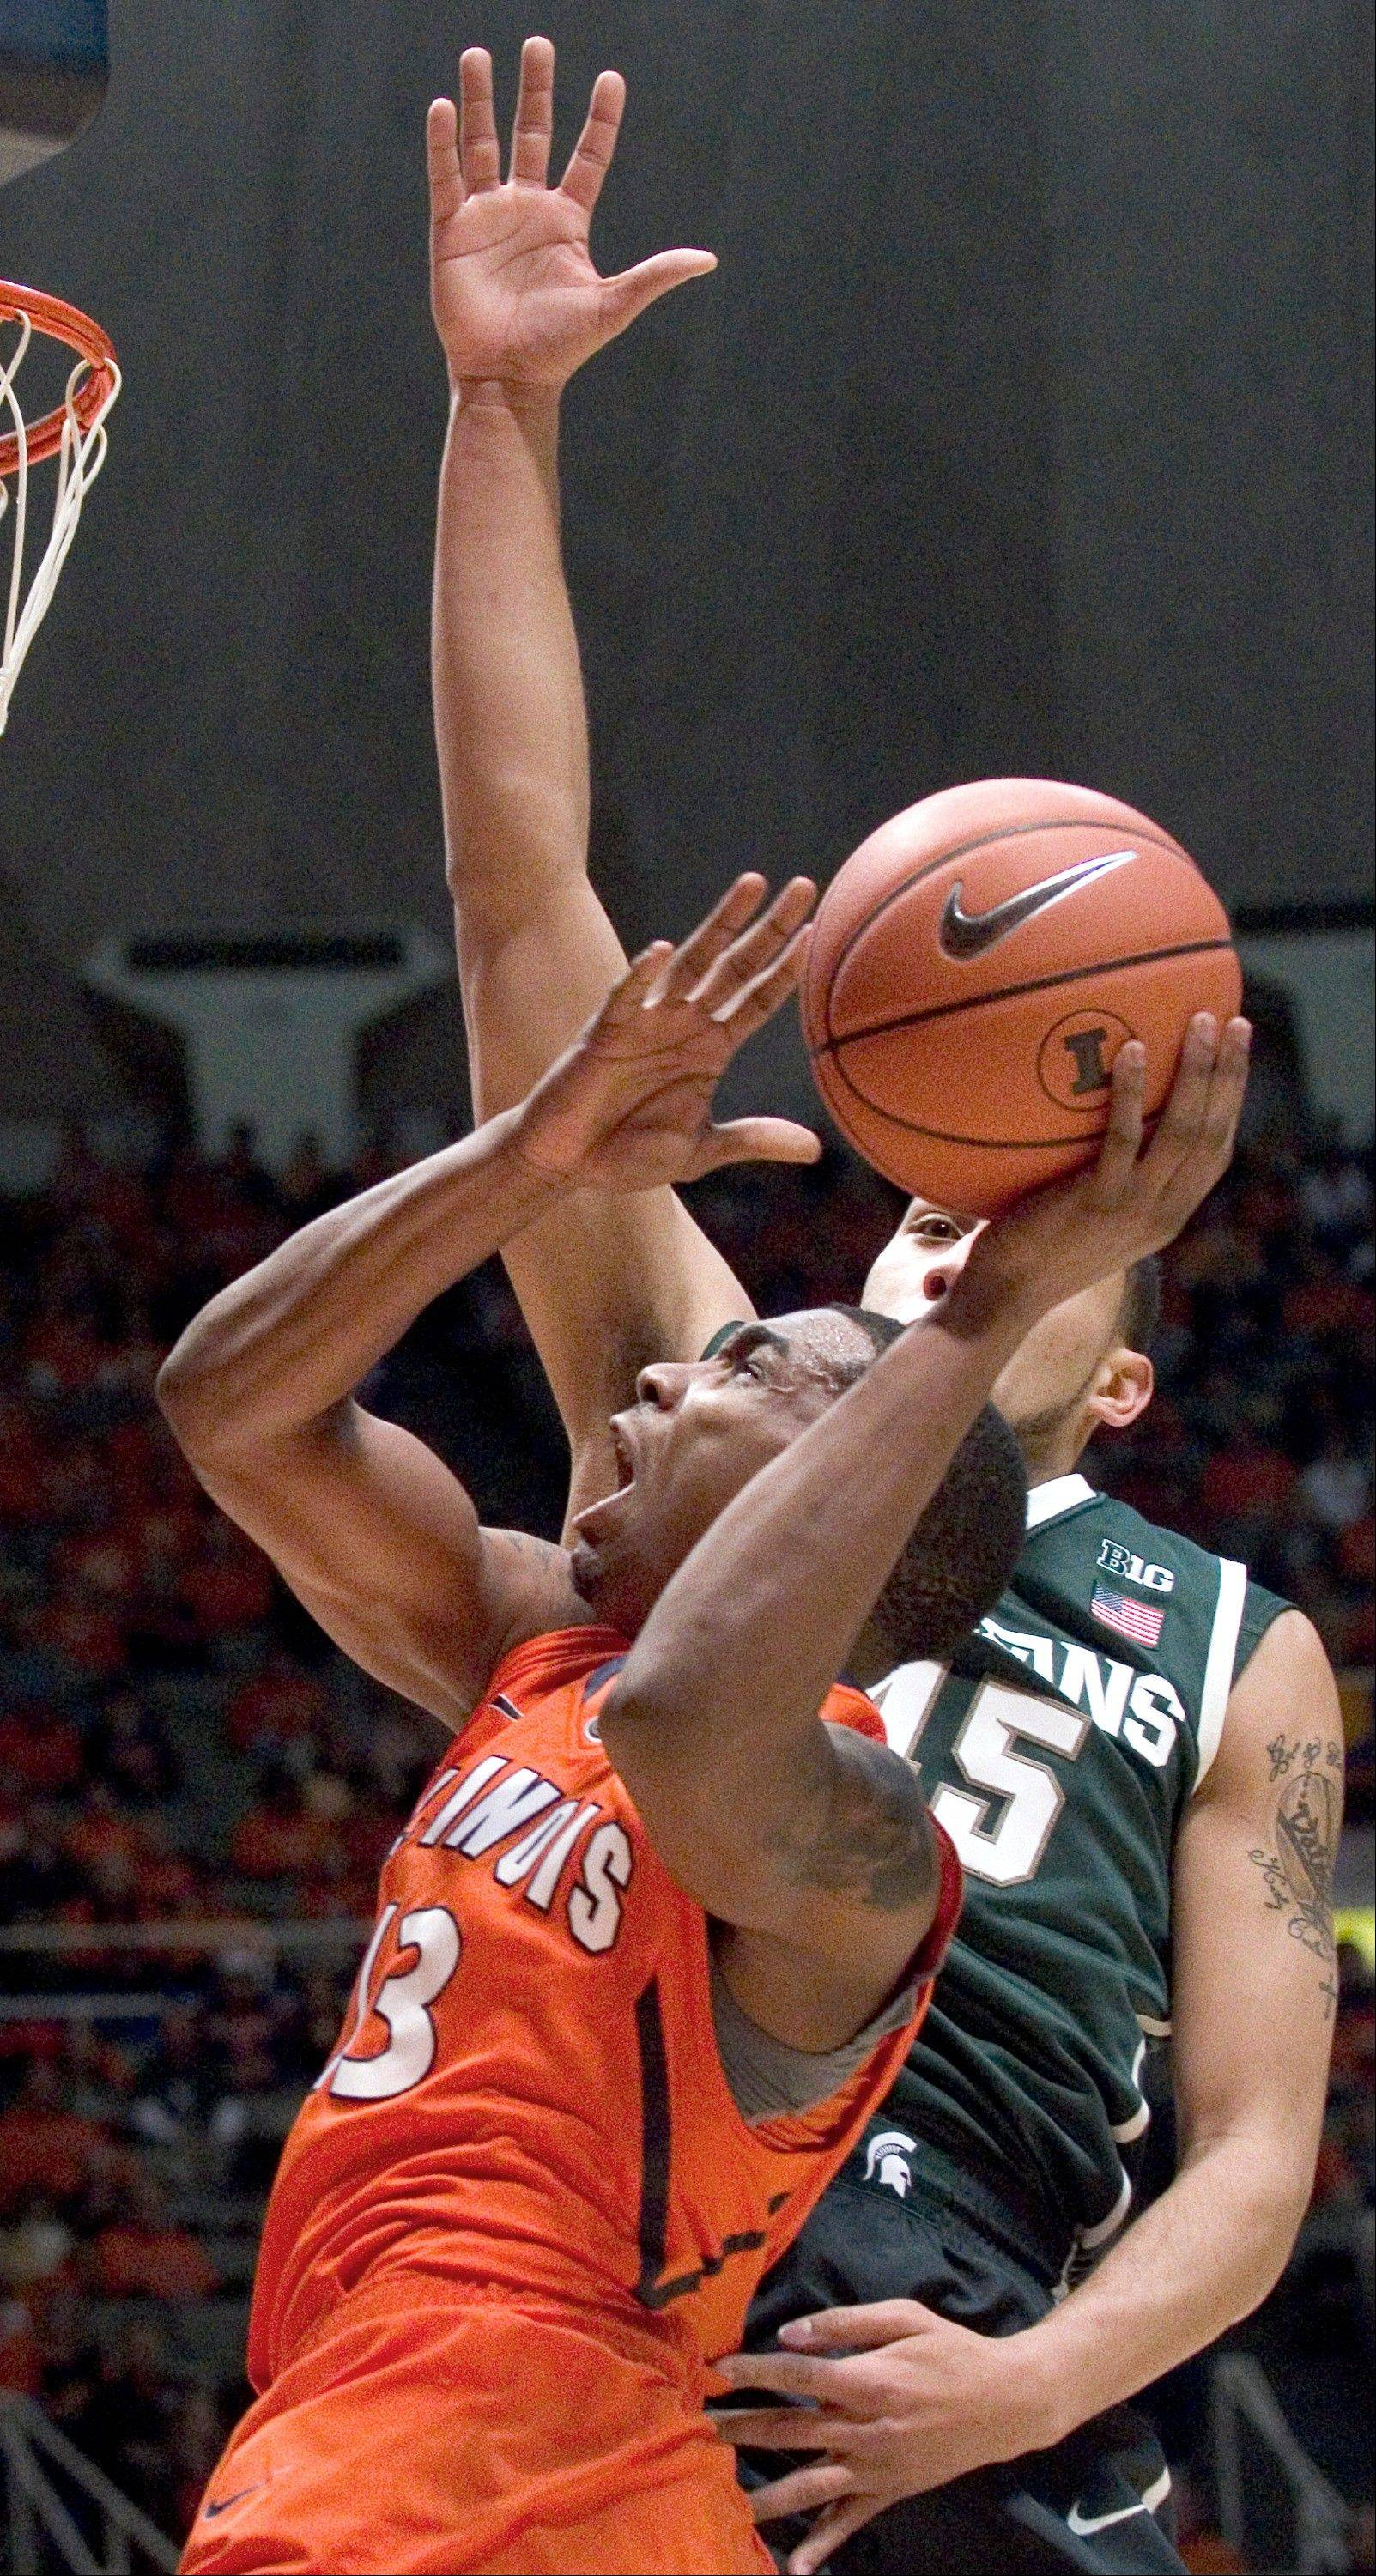 Illinois� Tracy Abrams (13) looks for a shot against Michigan State�s Denzel Valentine (45) during Saturday night�s game in Champaign. The Illini lost 78-62.